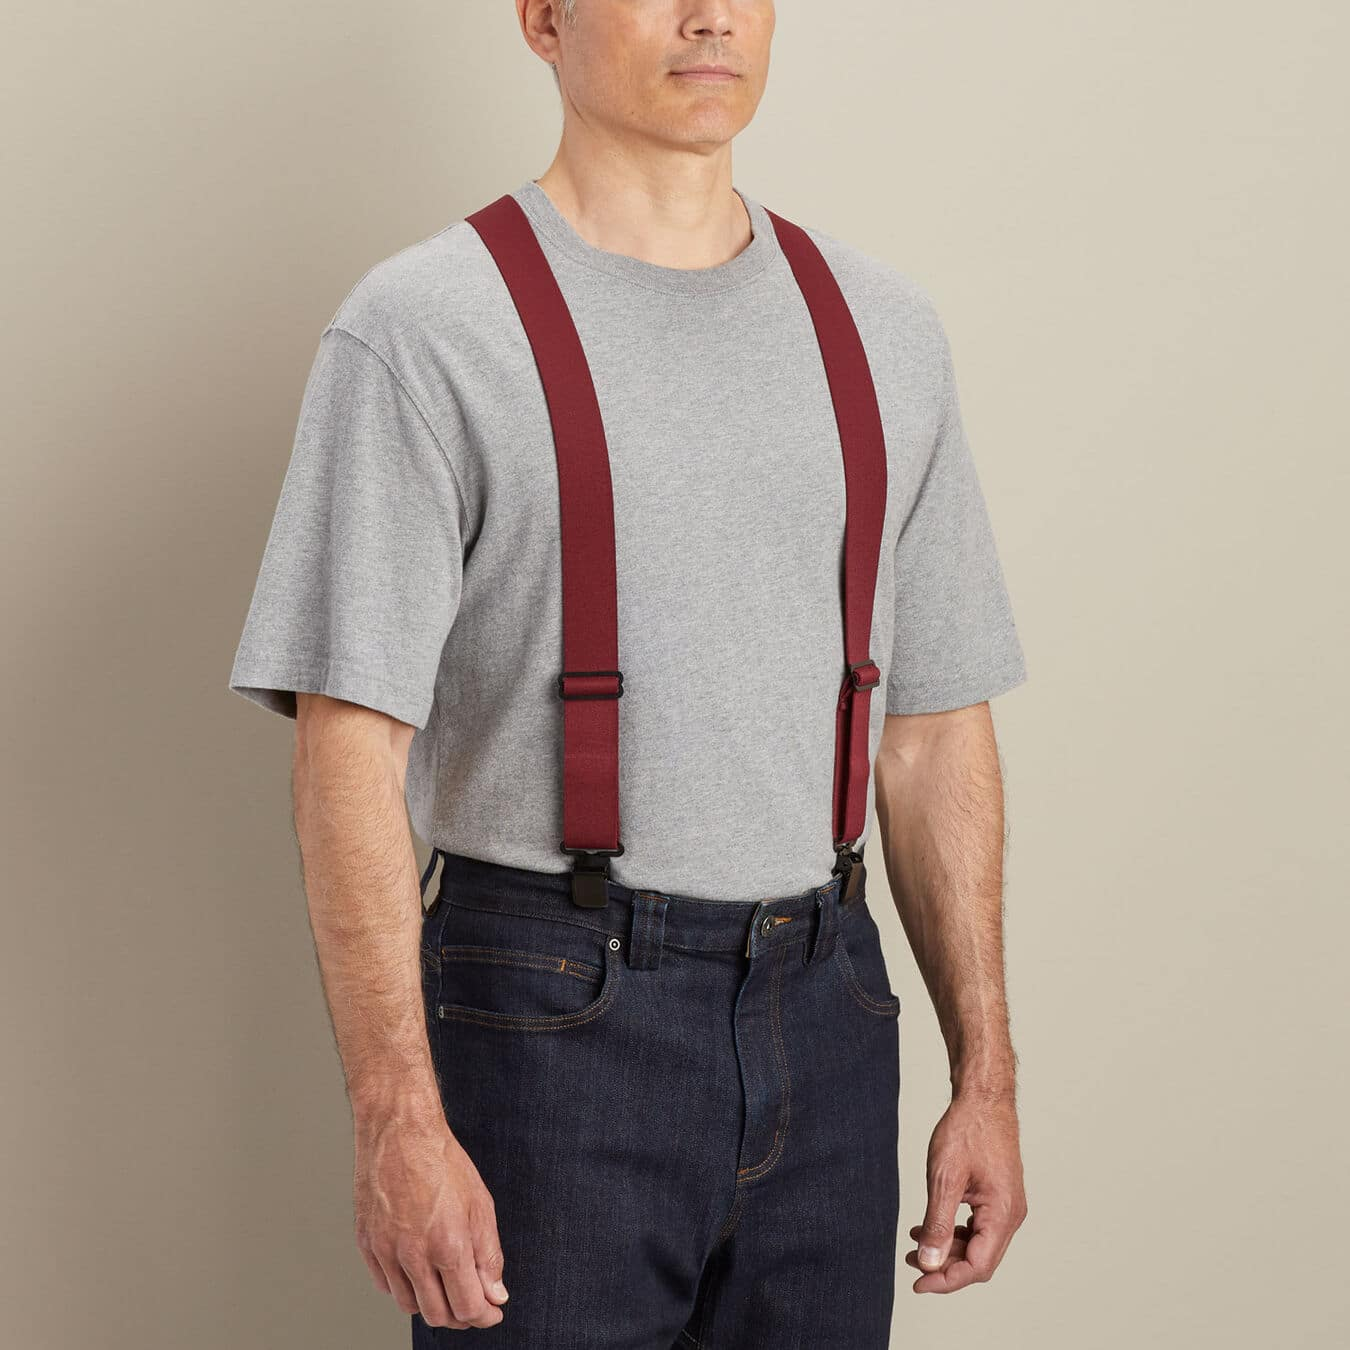 Duluth Trading Men's Thin Clip Suspenders